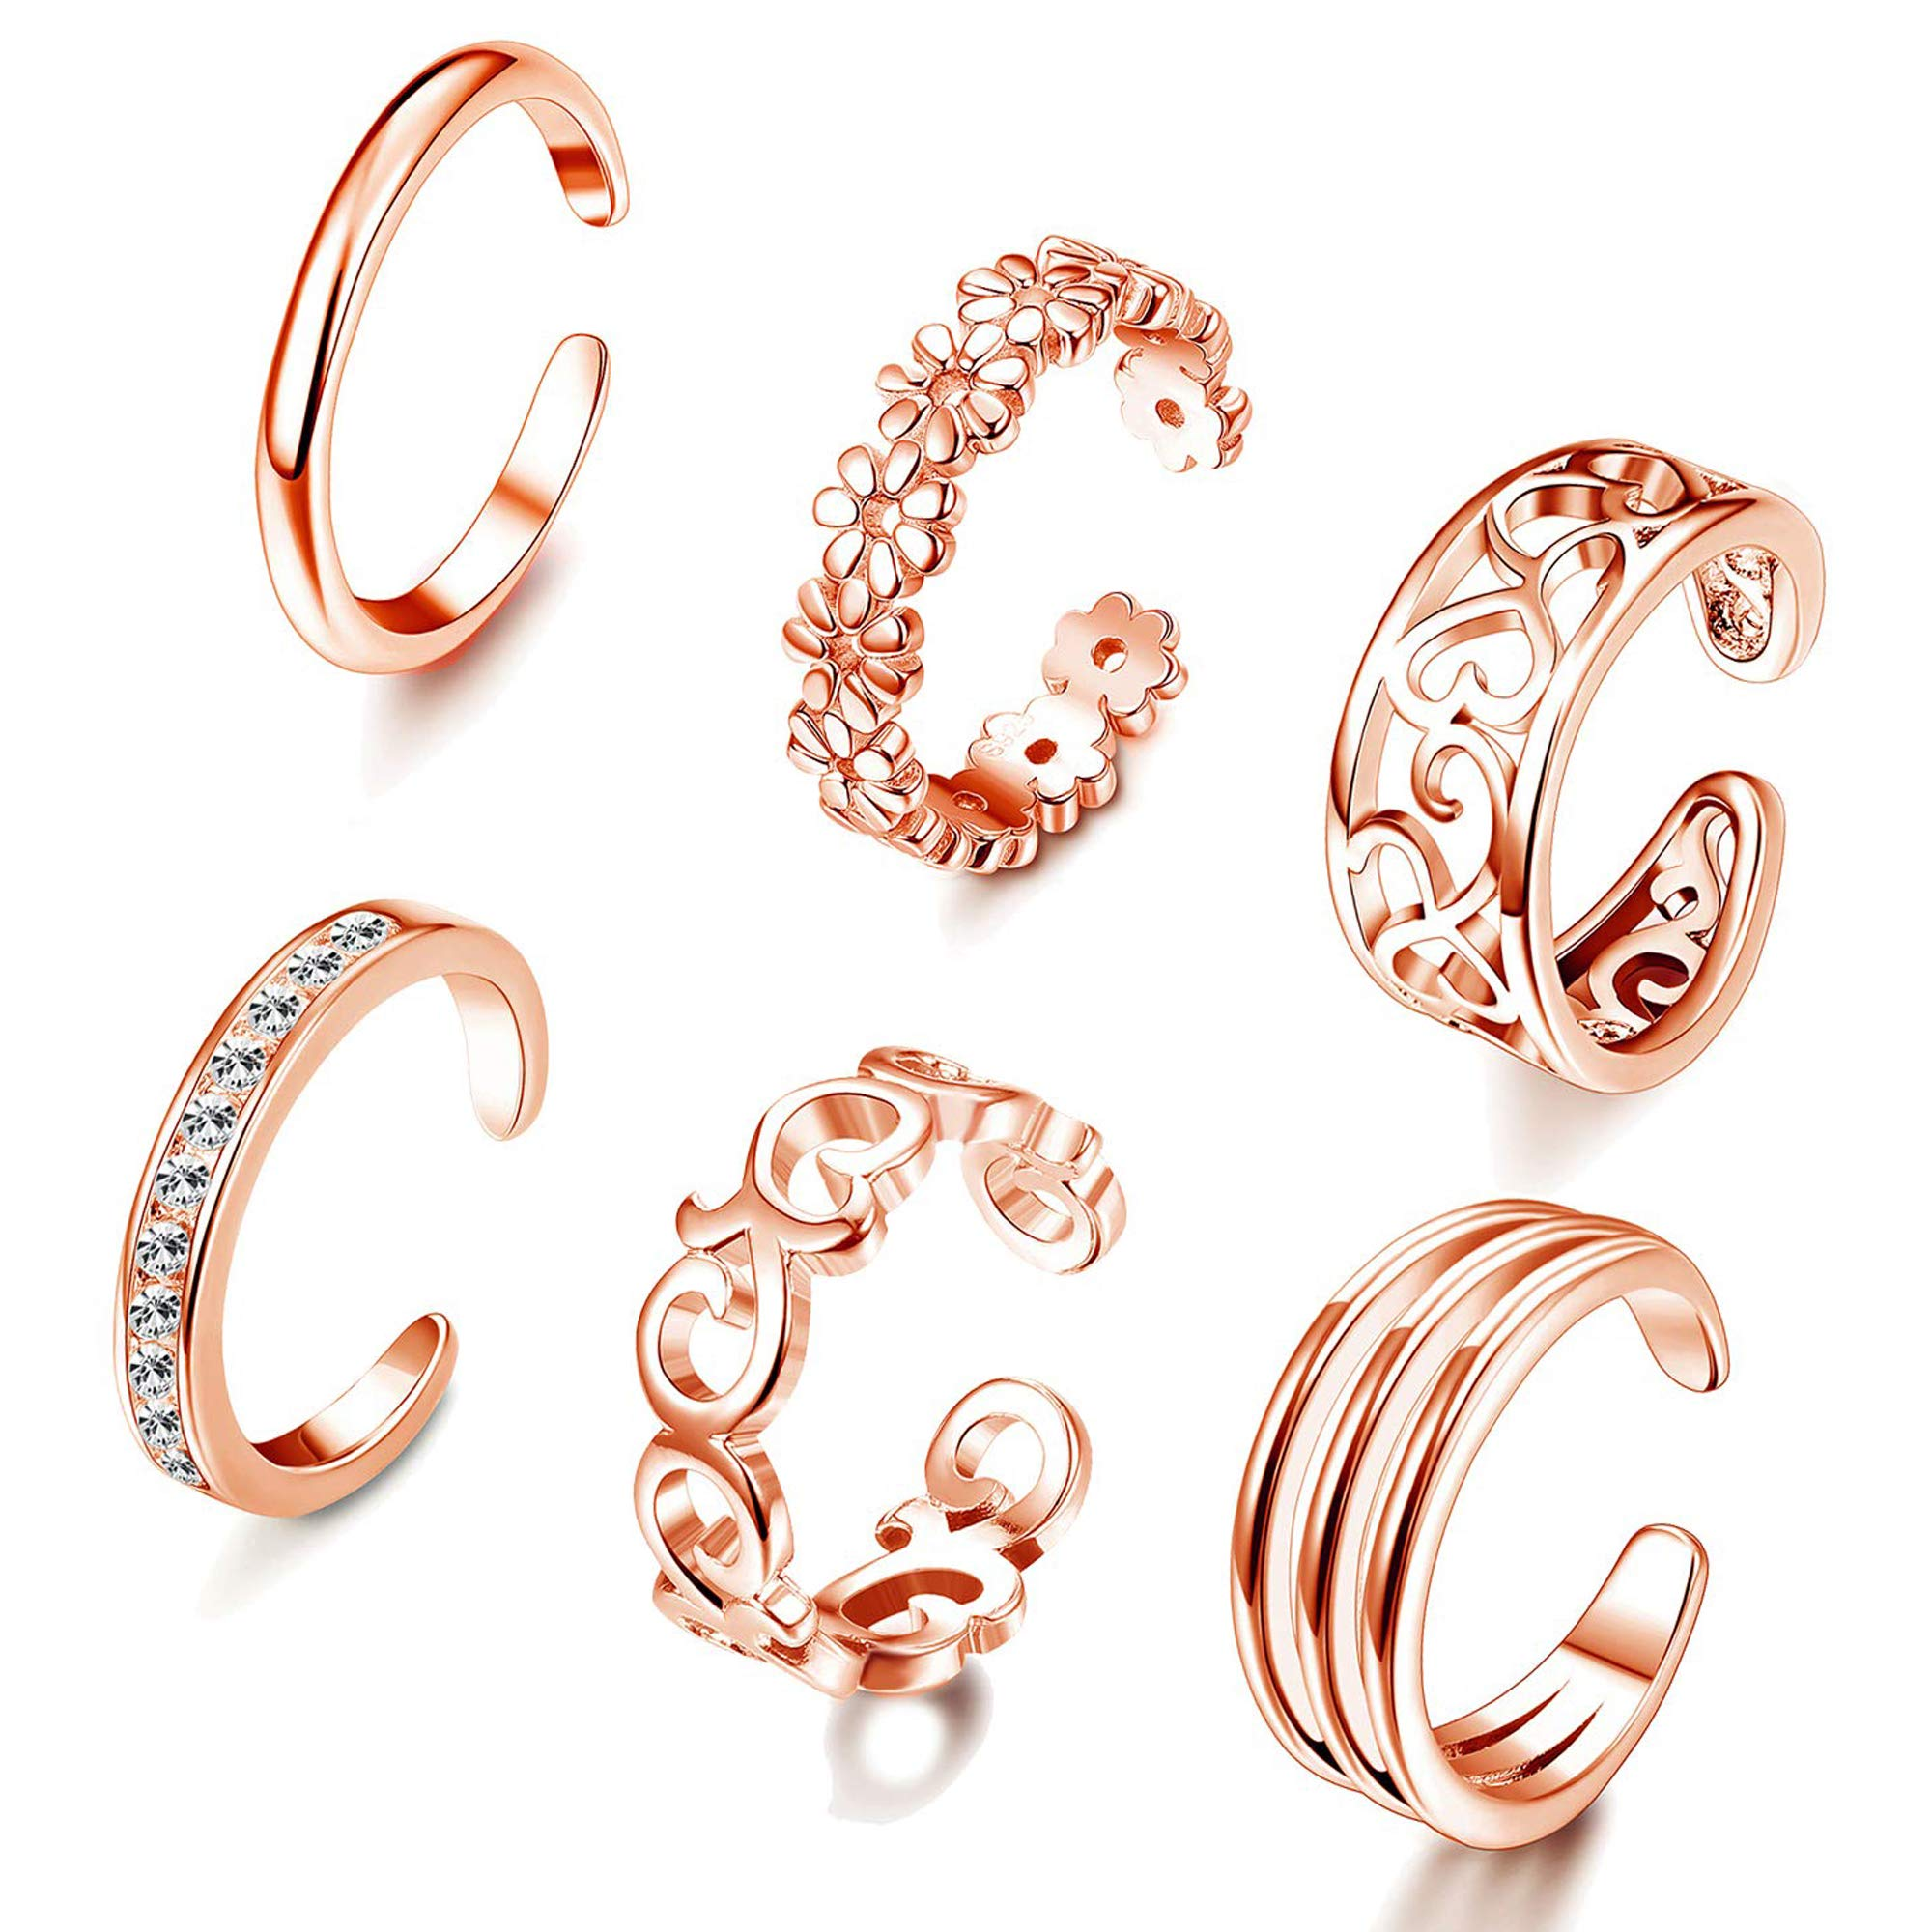 LOLIAS 4Pcs Open Toe Rings for Women Girls Arrow Adjustable Toe Band Ring Gifts Jewelry Set (E:6 Pcs Rose Gold) by LOLIAS